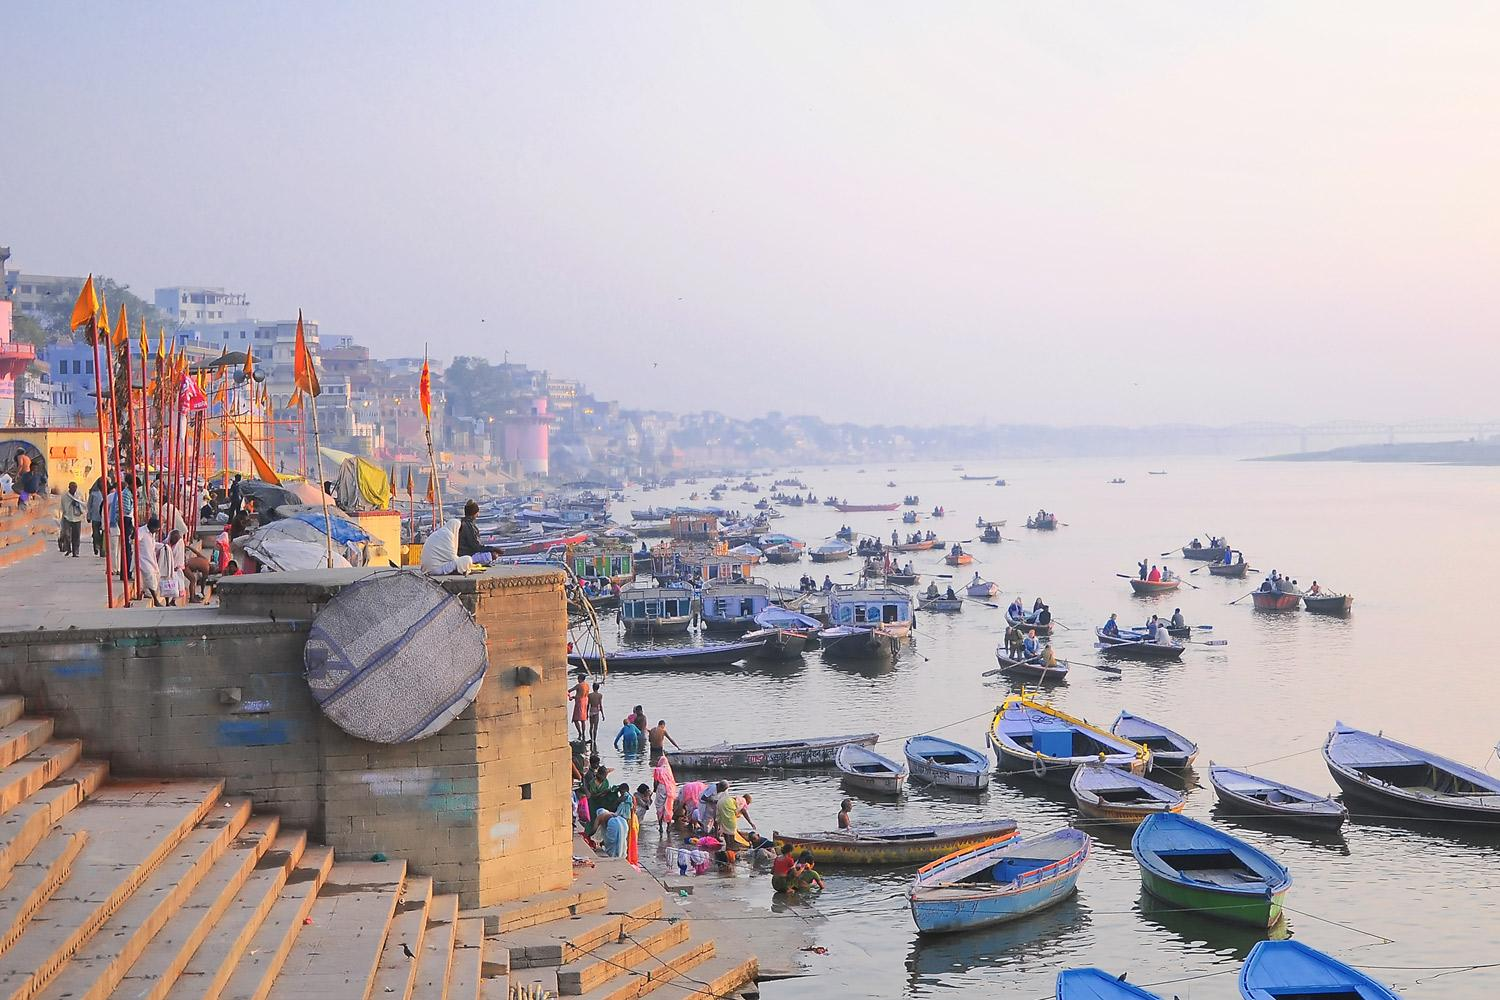 The Ganges at dawn in Varanasi